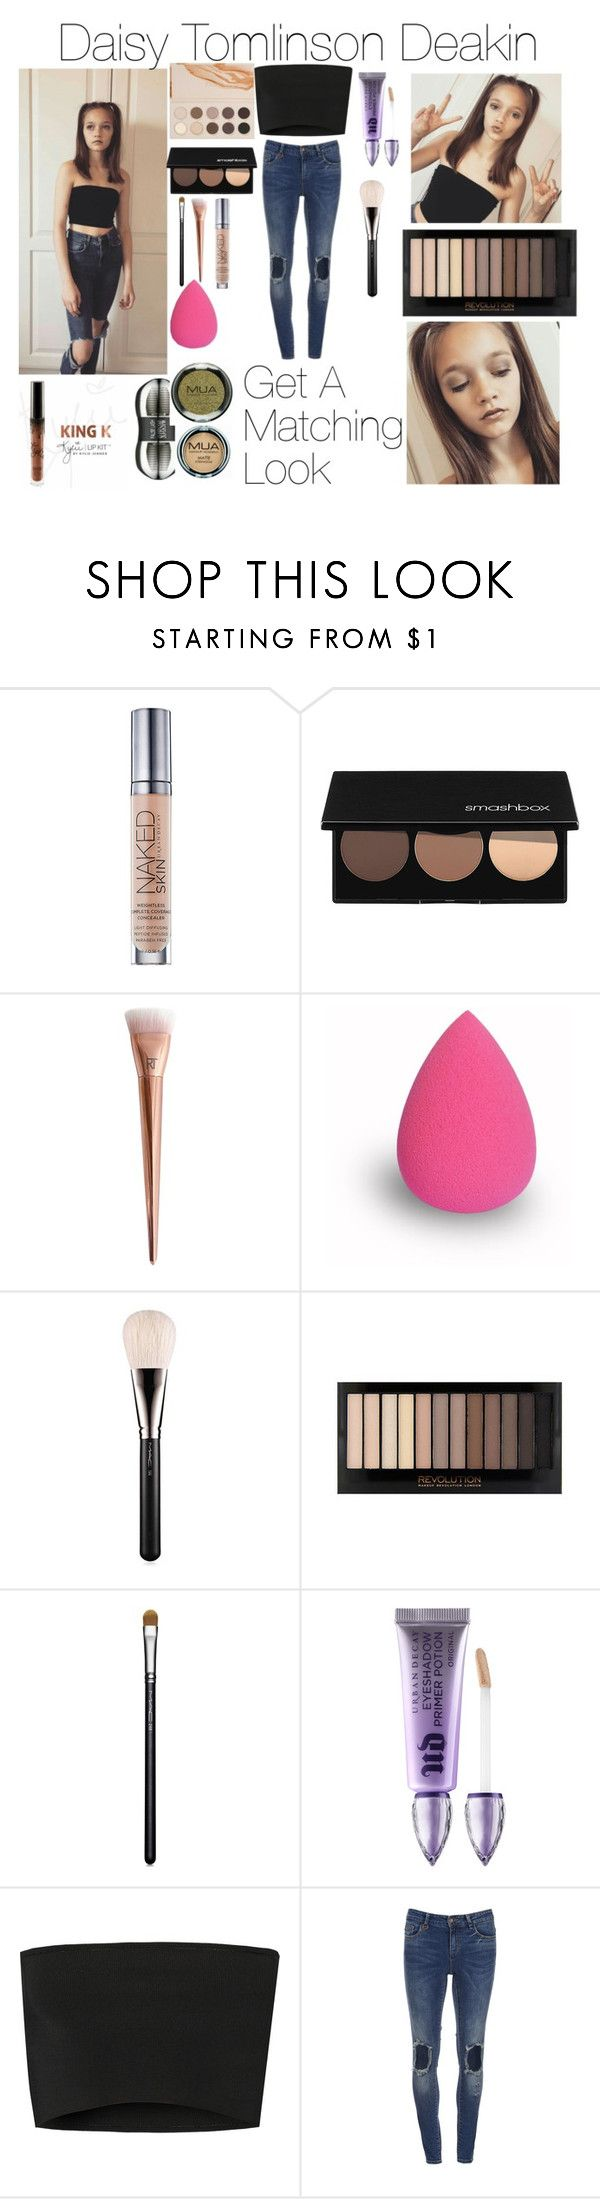 """Daisy Tomlinson Deakin"" by hawraasaeed ❤ liked on Polyvore featuring beauty, Urban Decay, Smashbox, MAC Cosmetics and Calvin Klein Collection"